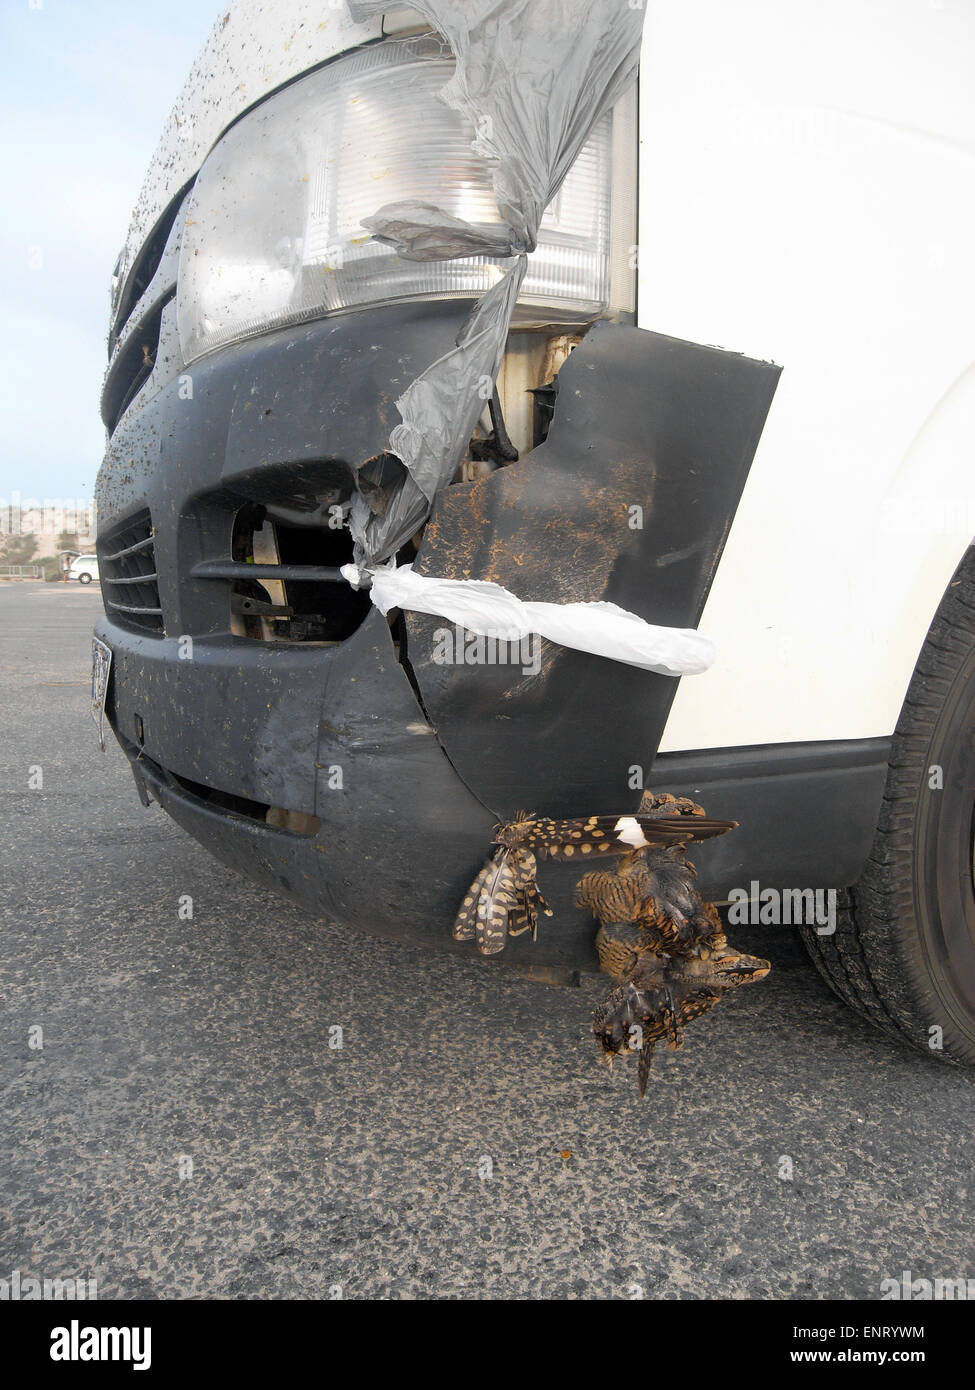 Roadkill incident involving death of Australian pheasant and substantial damage to vehicle, Pilbara region, Western - Stock Image